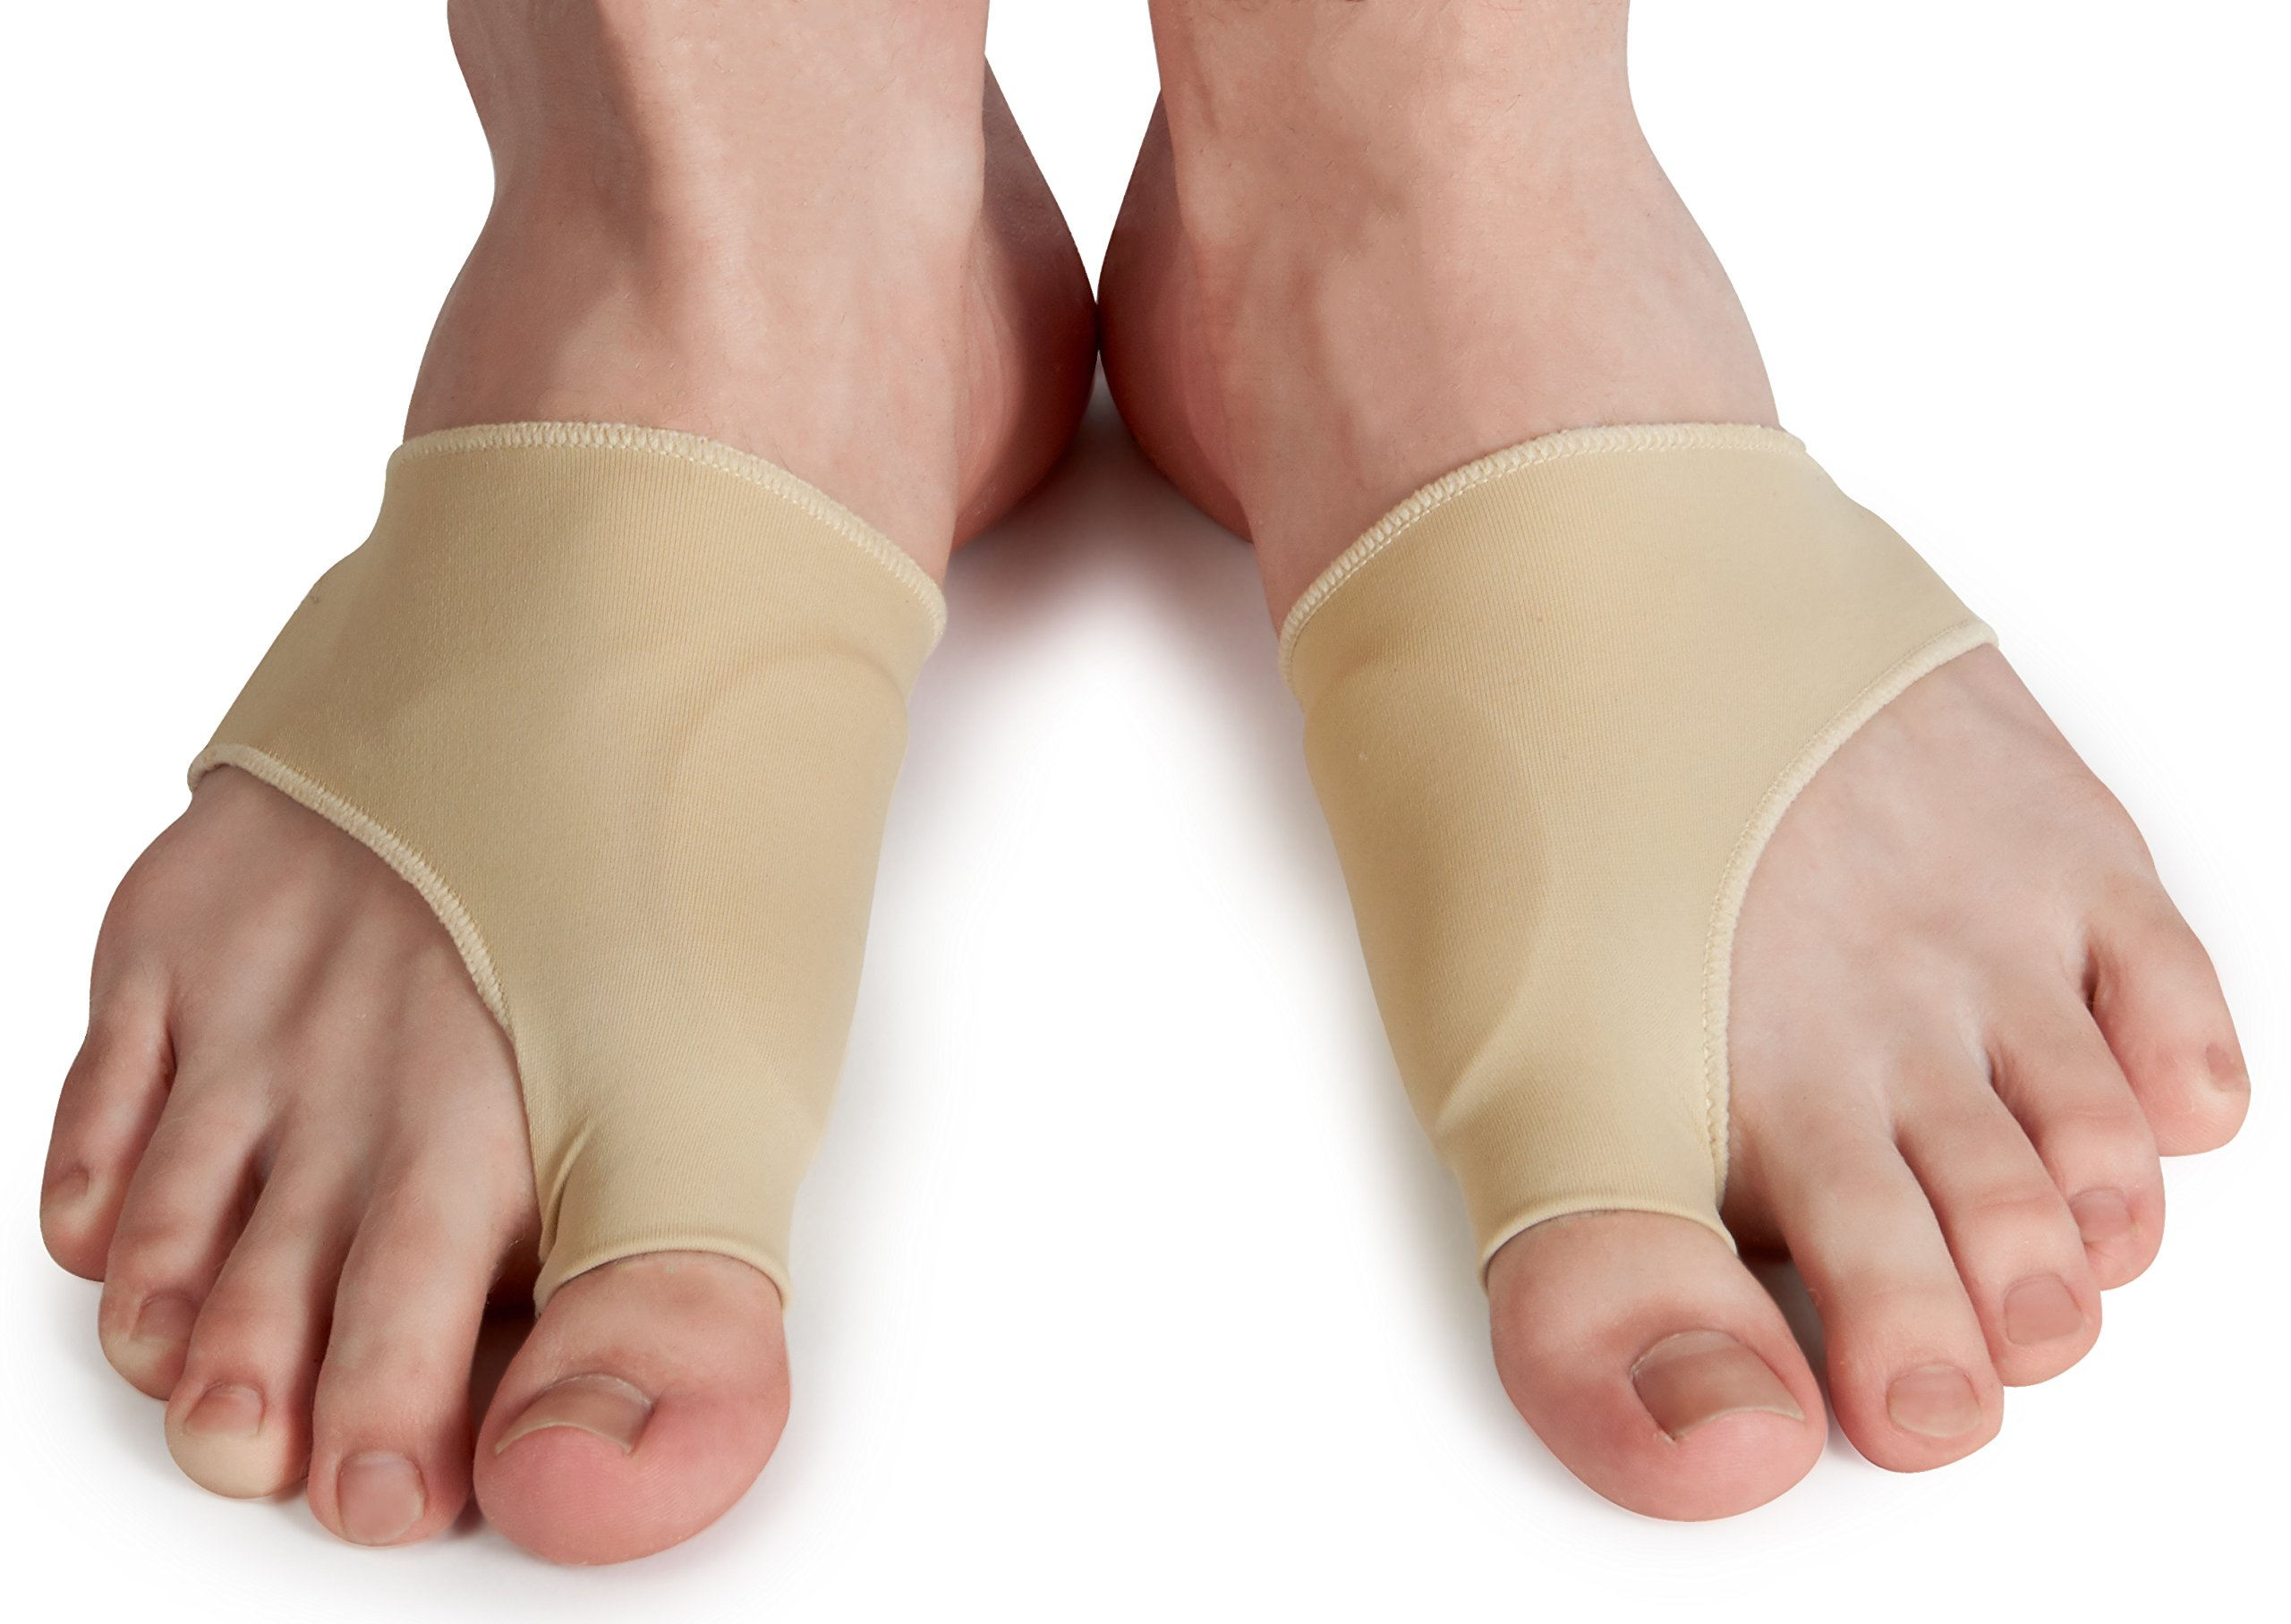 Bunion Relief Sleeve - Gel Bunion Pads Cushion Bunion Protector with Bunion Corrector that Relieve Hallux Valgus Foot Pain and Soothe Sore Bunions